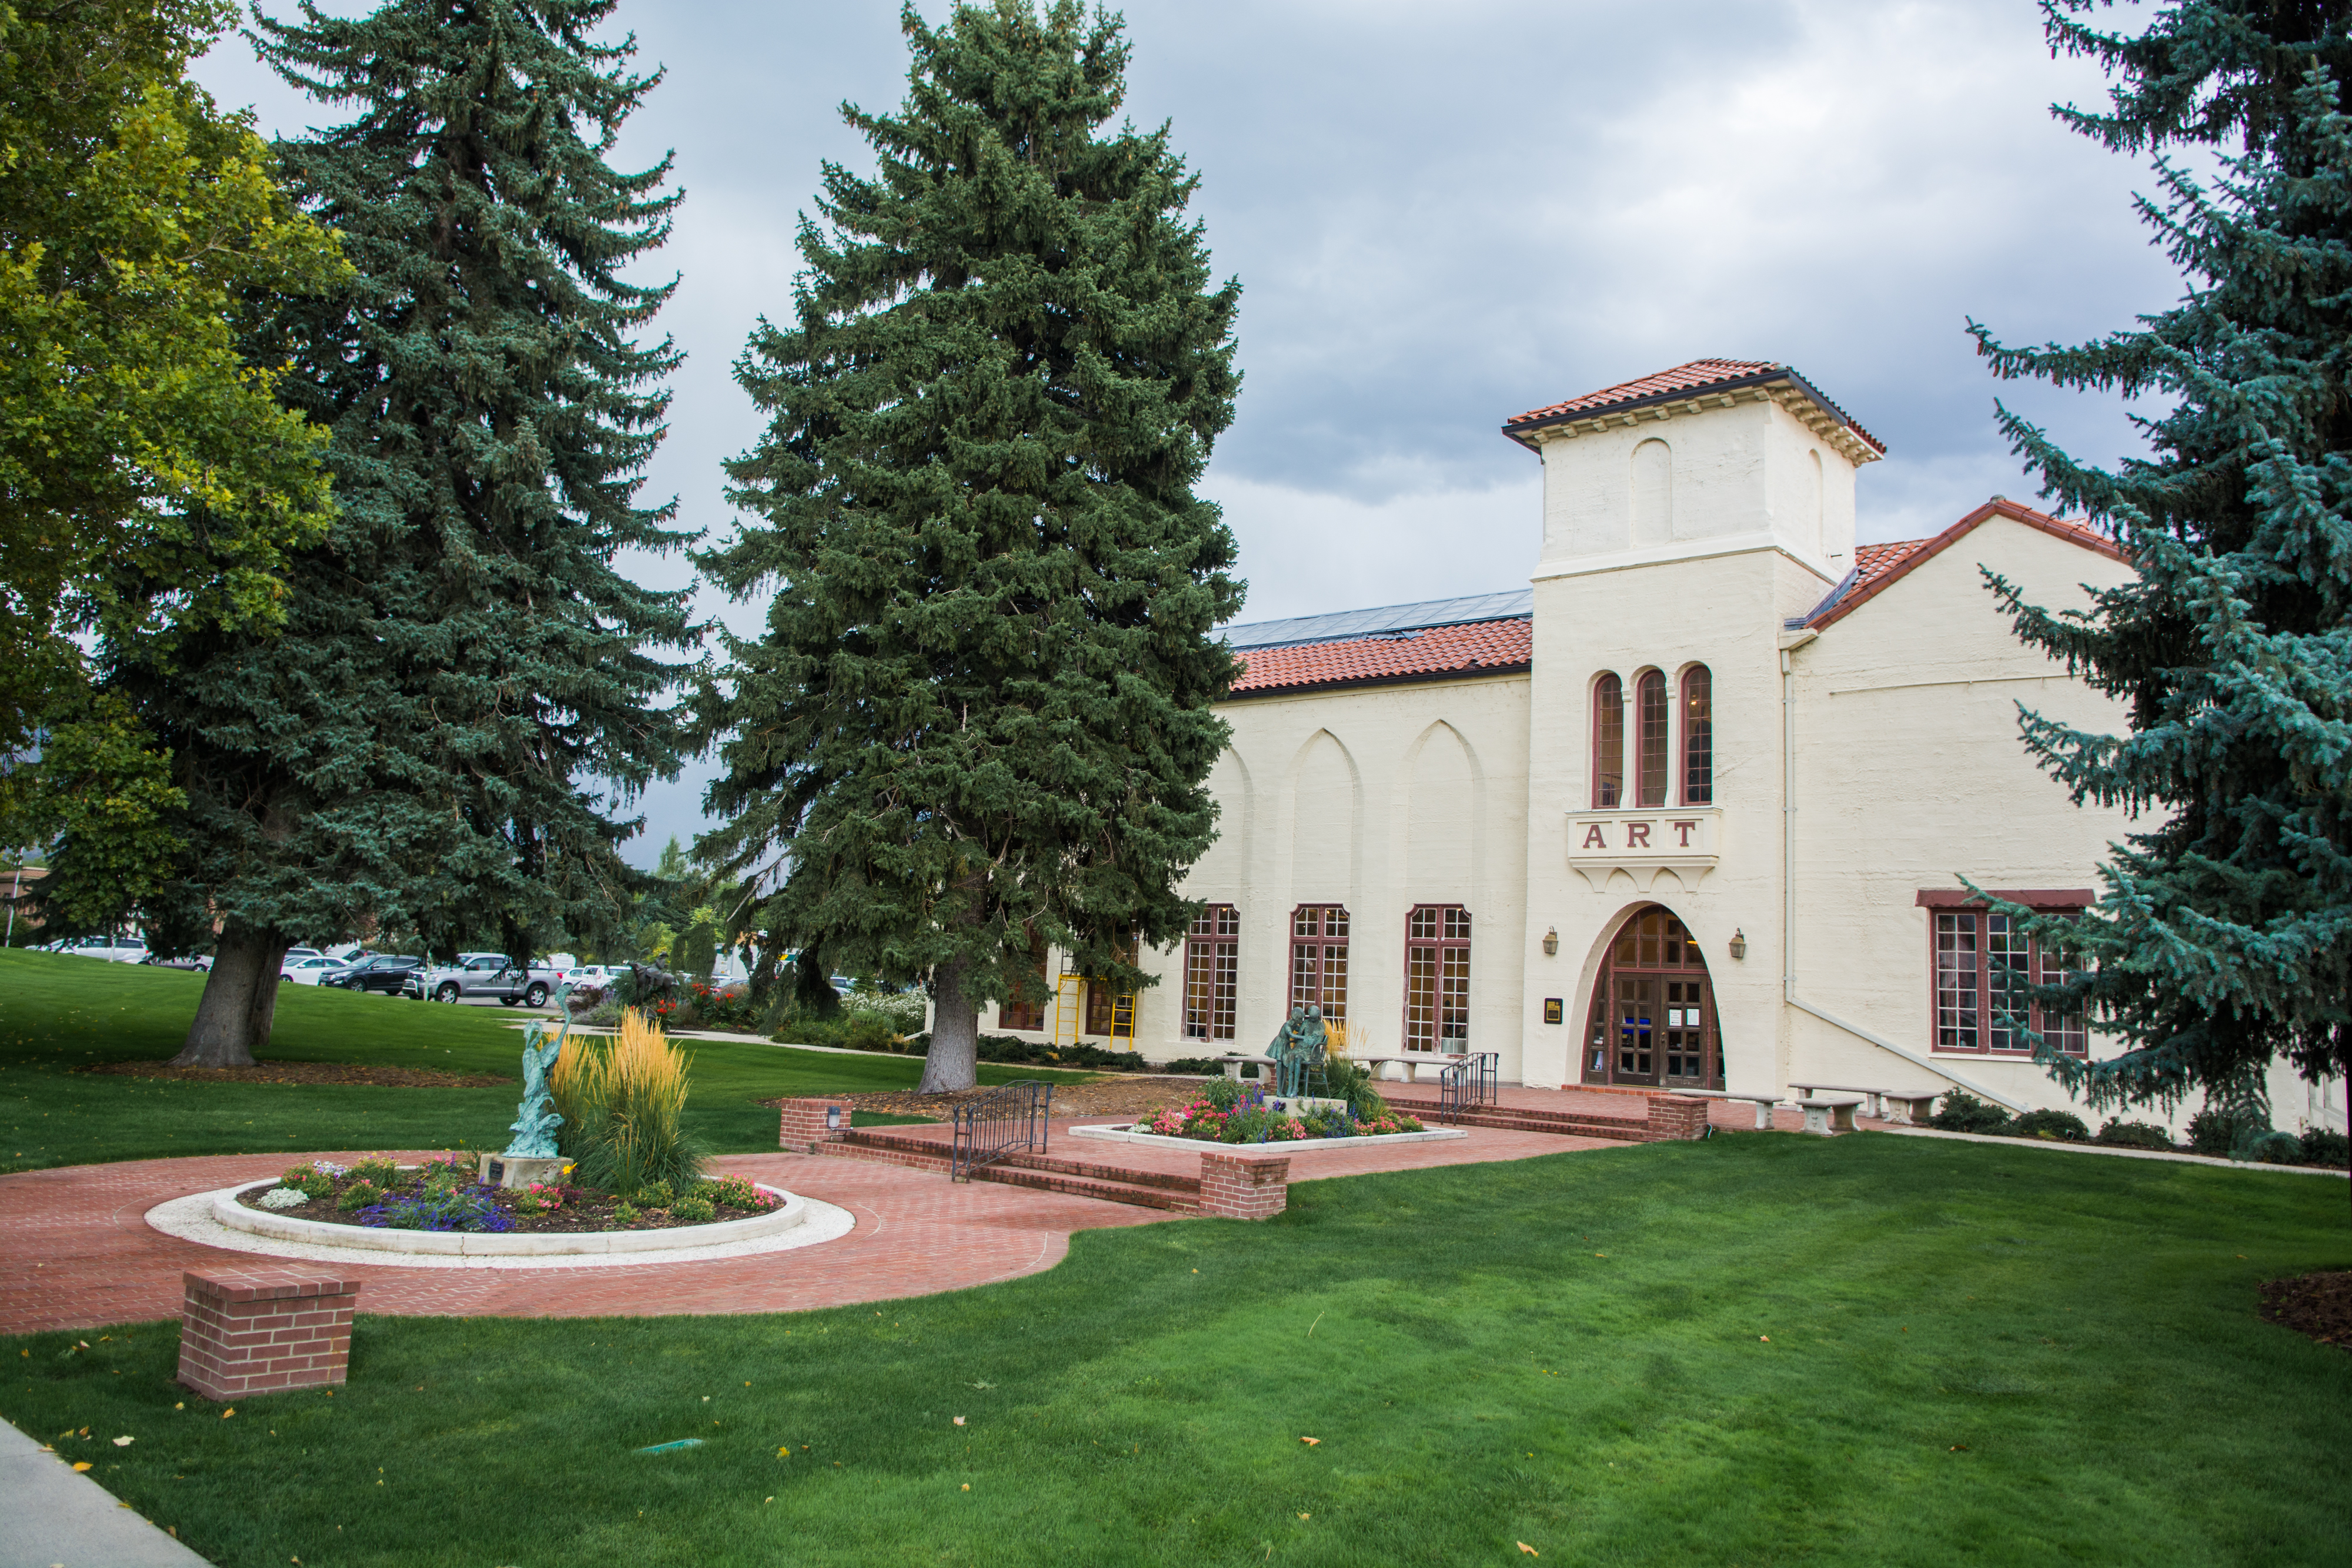 The exterior of the Springville Museum of Art